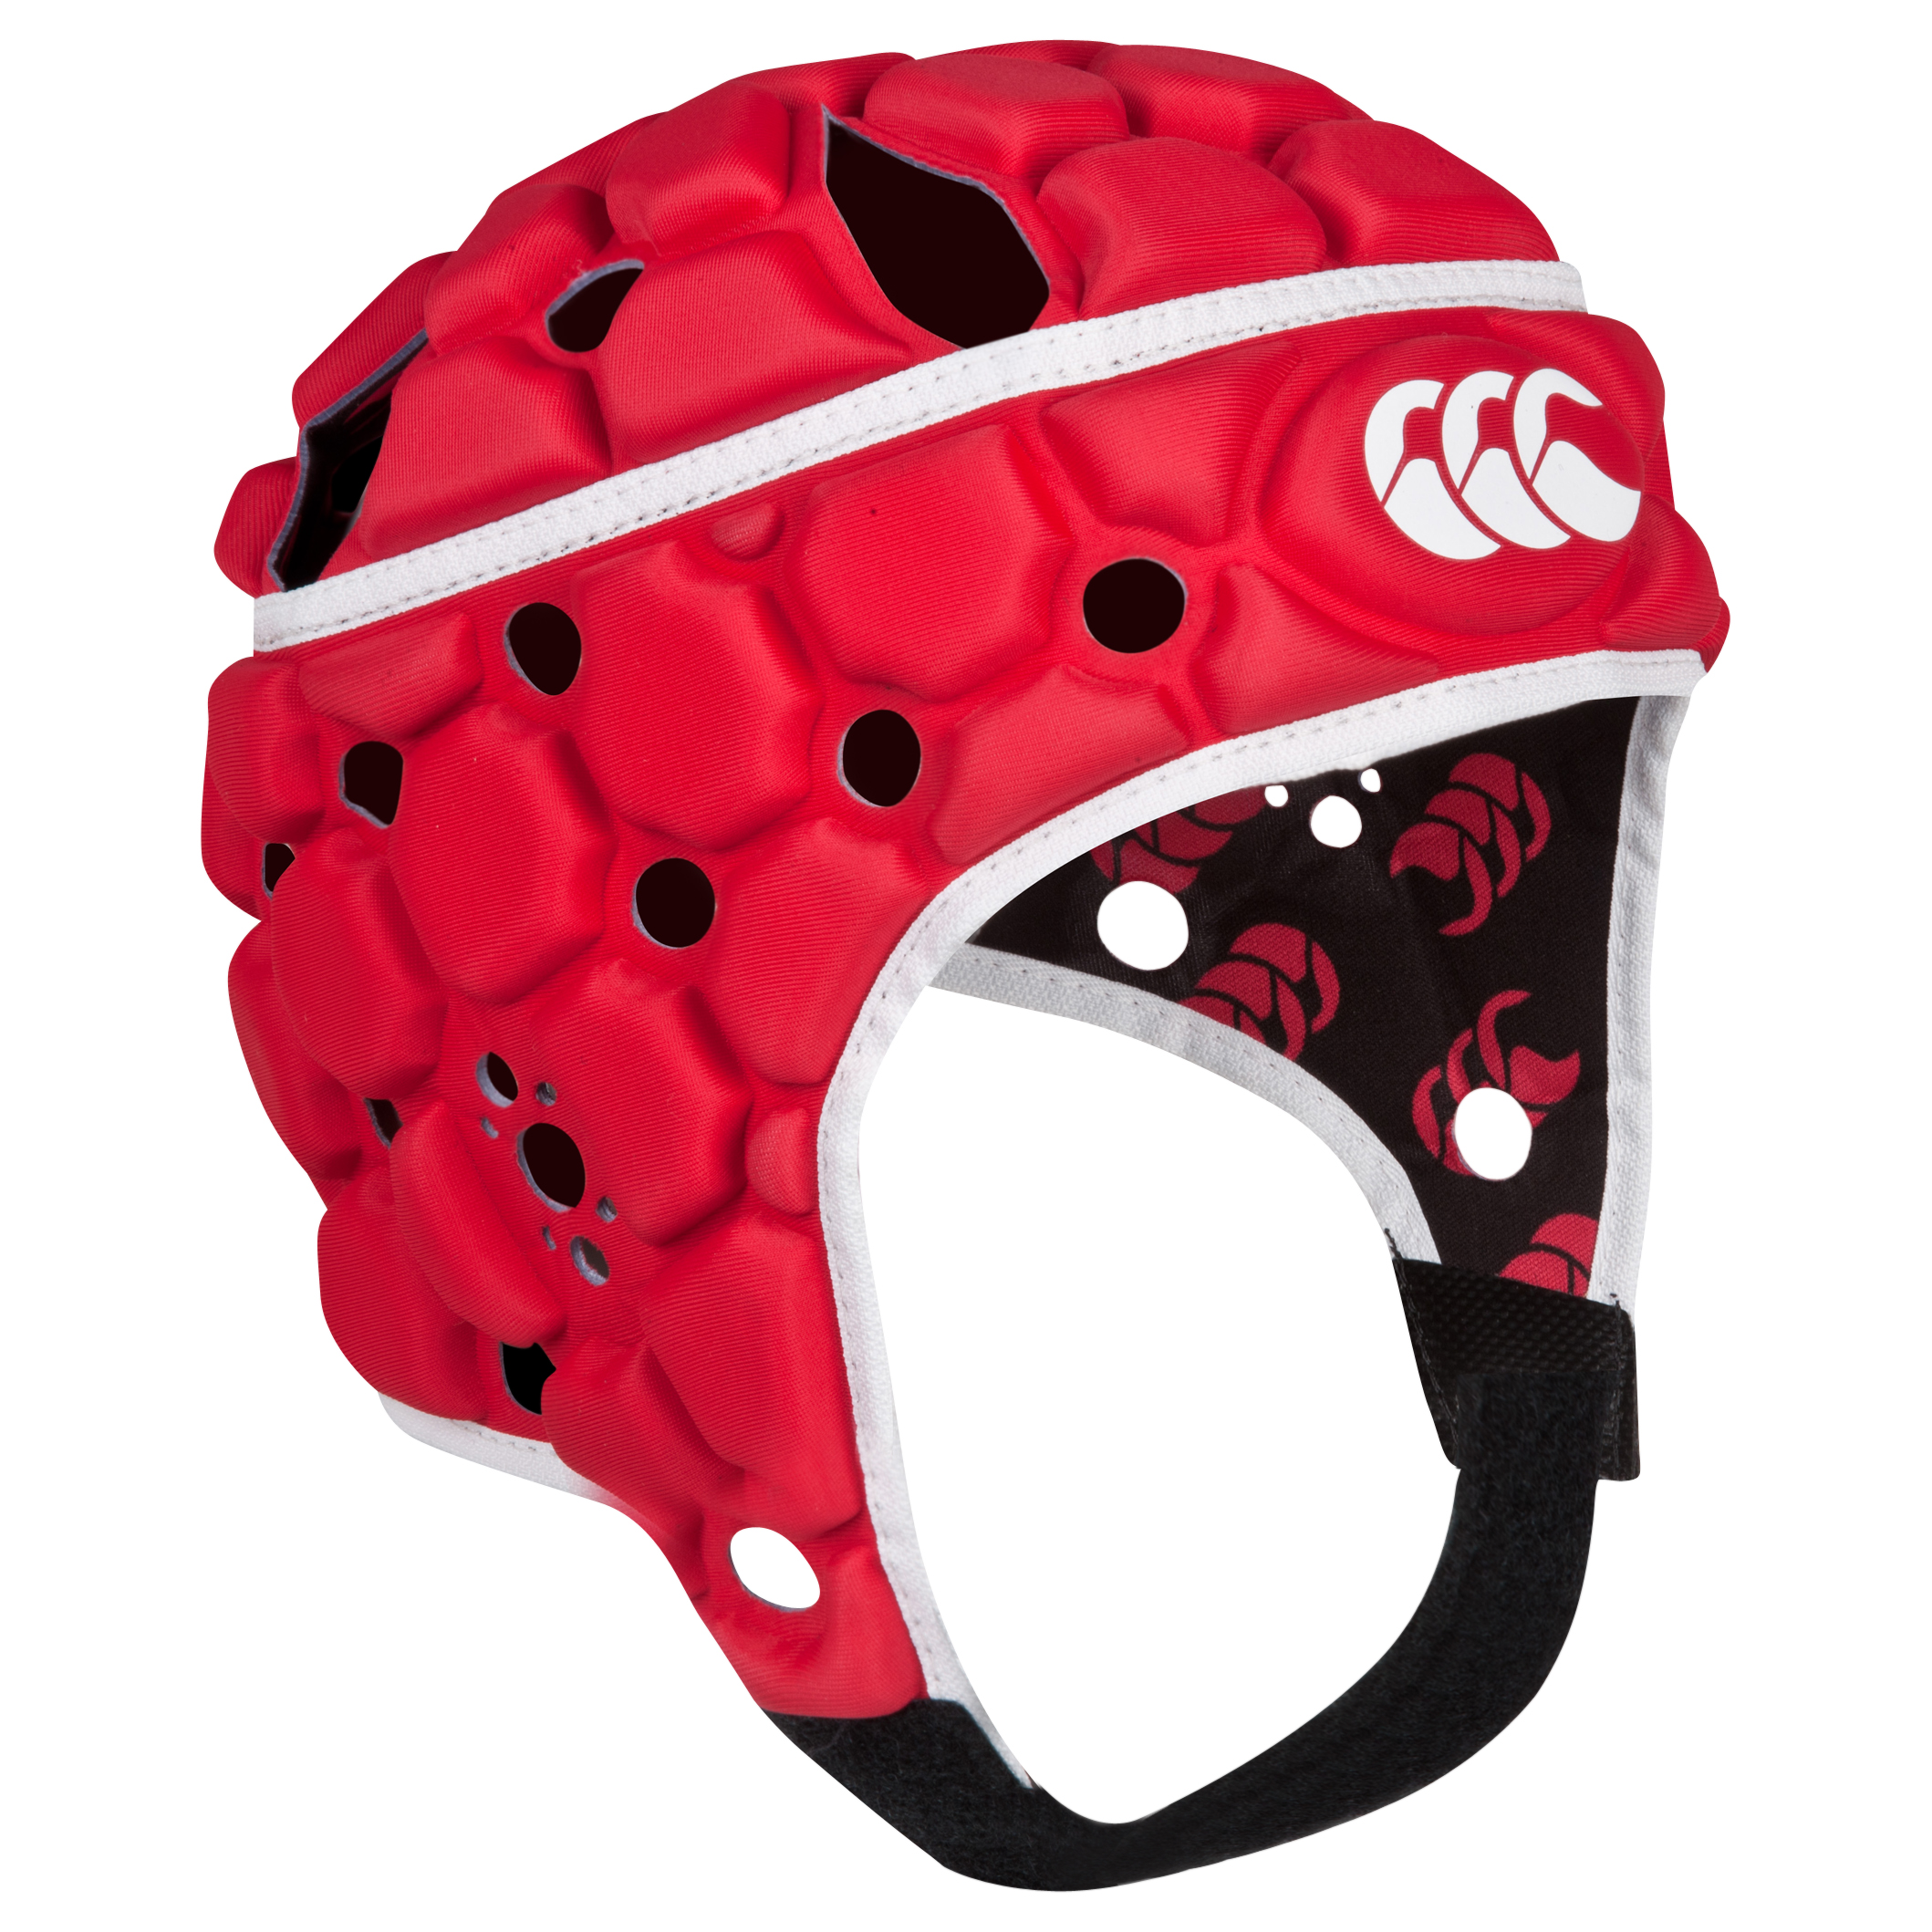 Canterbury Ventilator Rugby Headguard - Flag Red